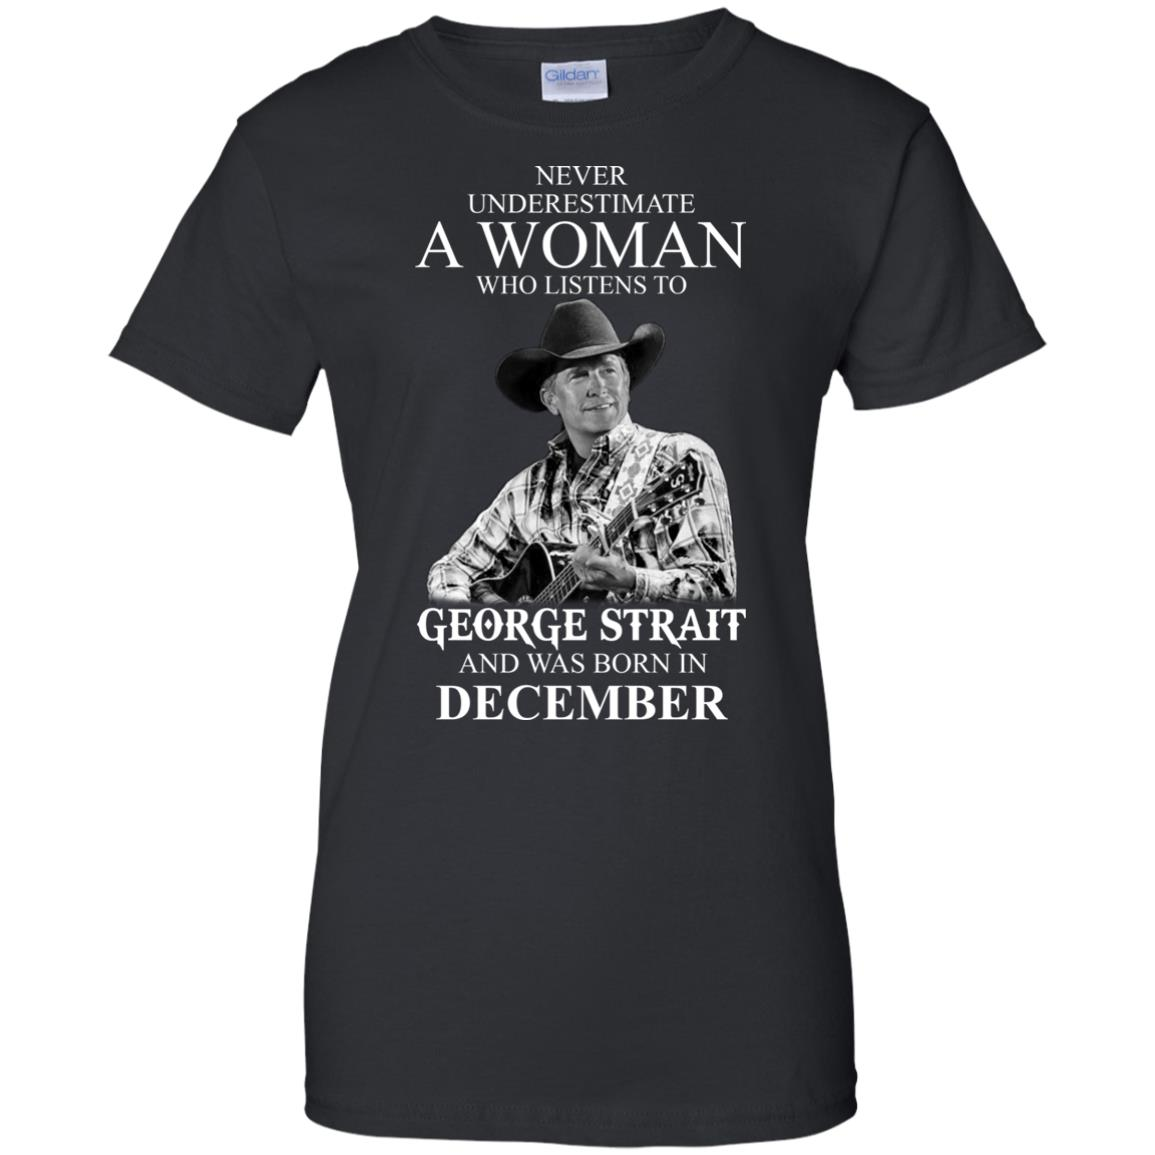 image 348 - Never Underestimate A Woman Who Listens To George Strait And Was Born In December shirt